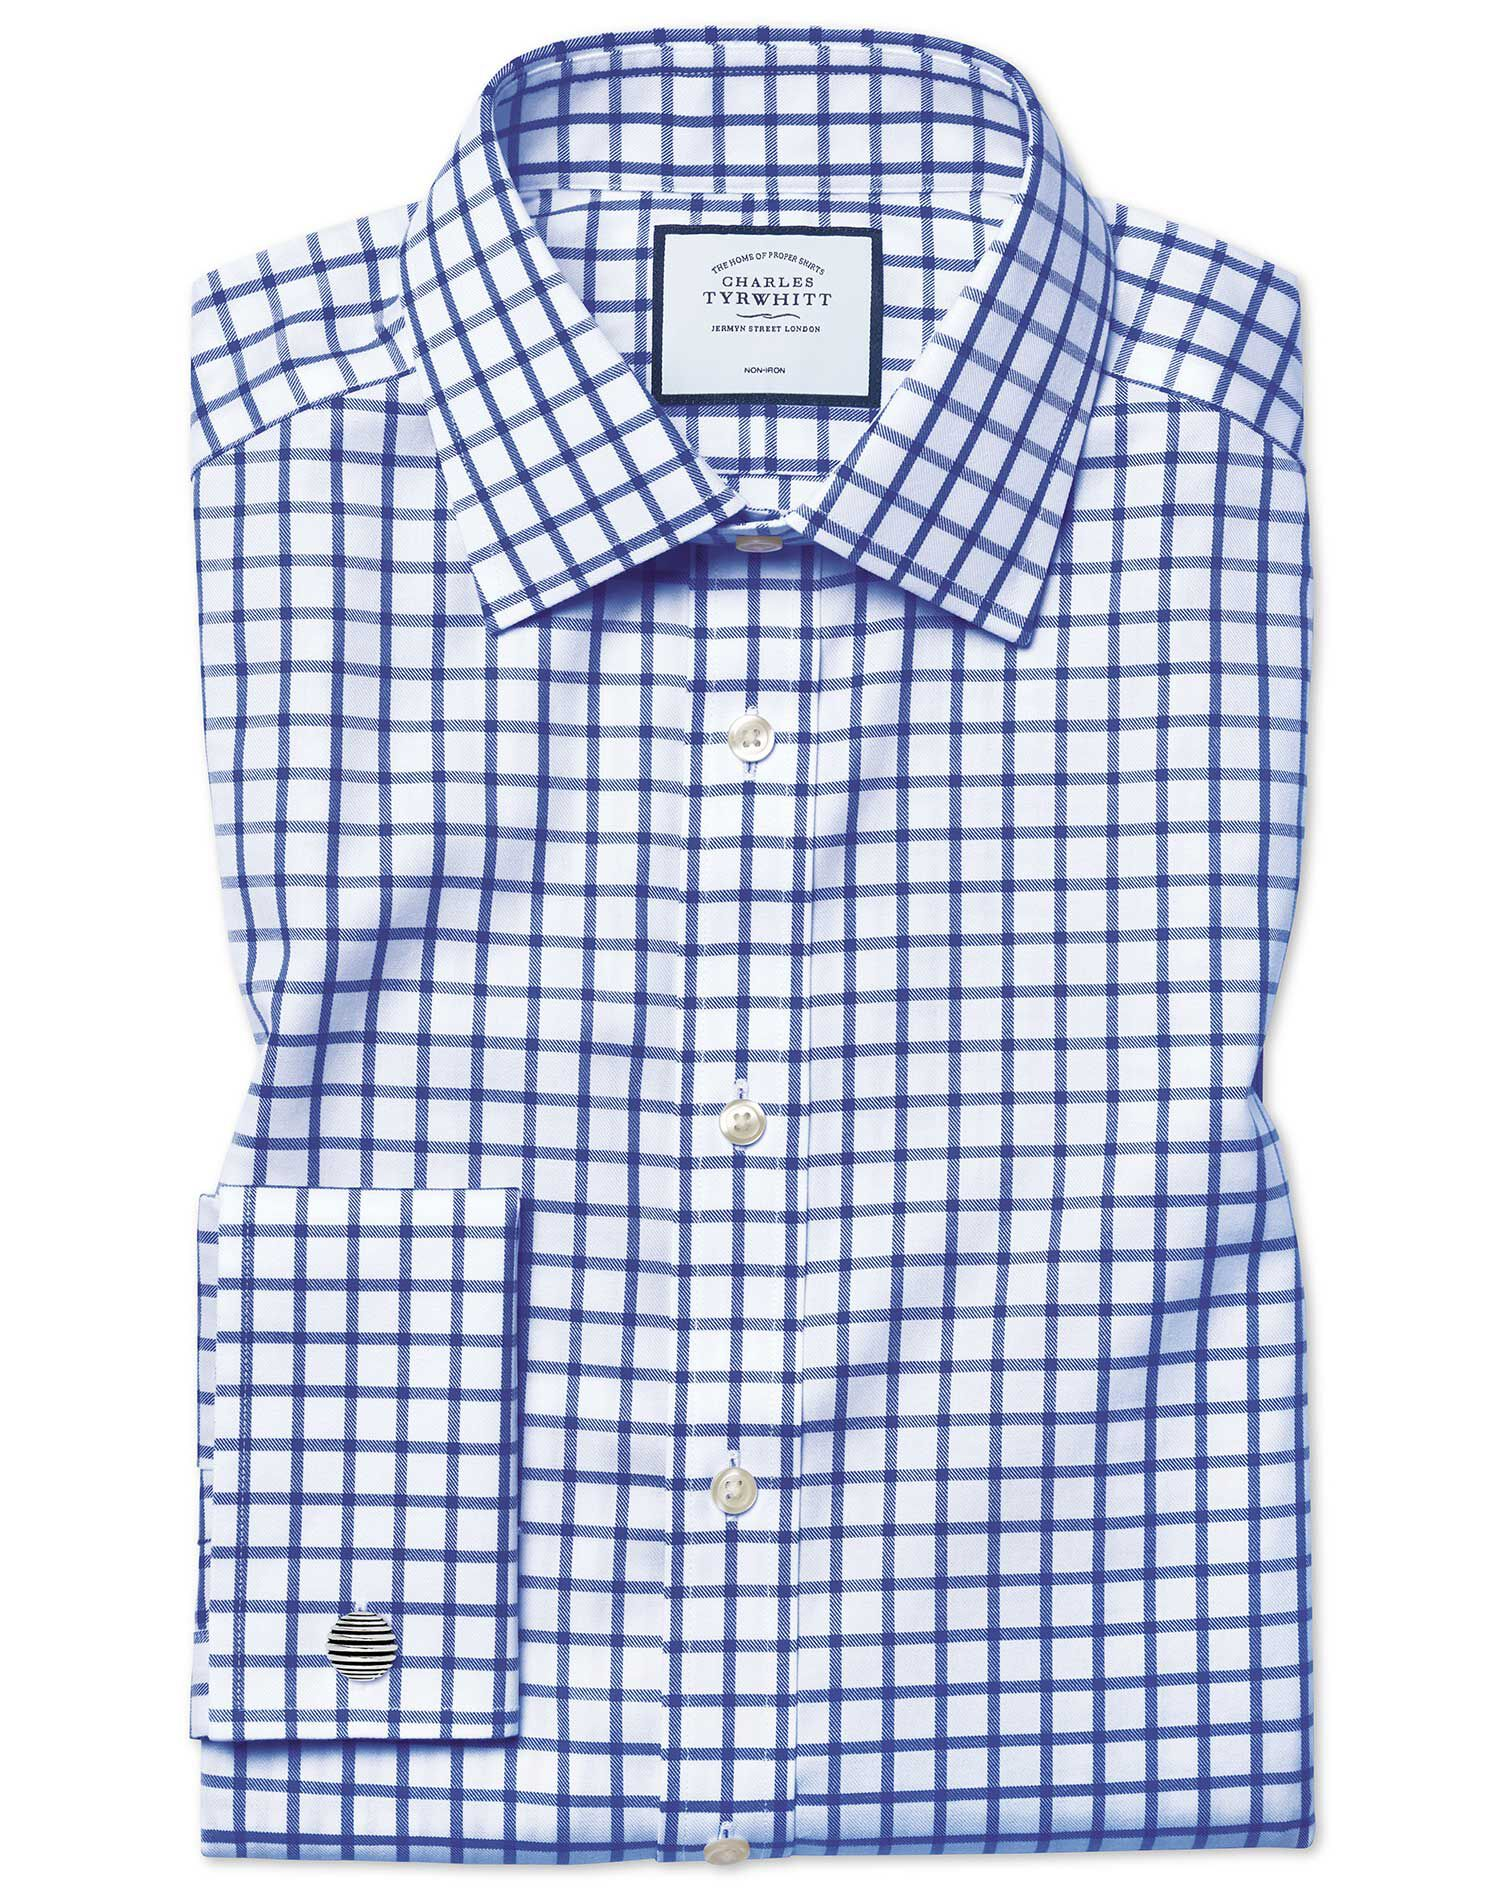 Extra Slim Fit Non-Iron Twill Grid Check Royal Blue Cotton Formal Shirt Single Cuff Size 14.5/33 by